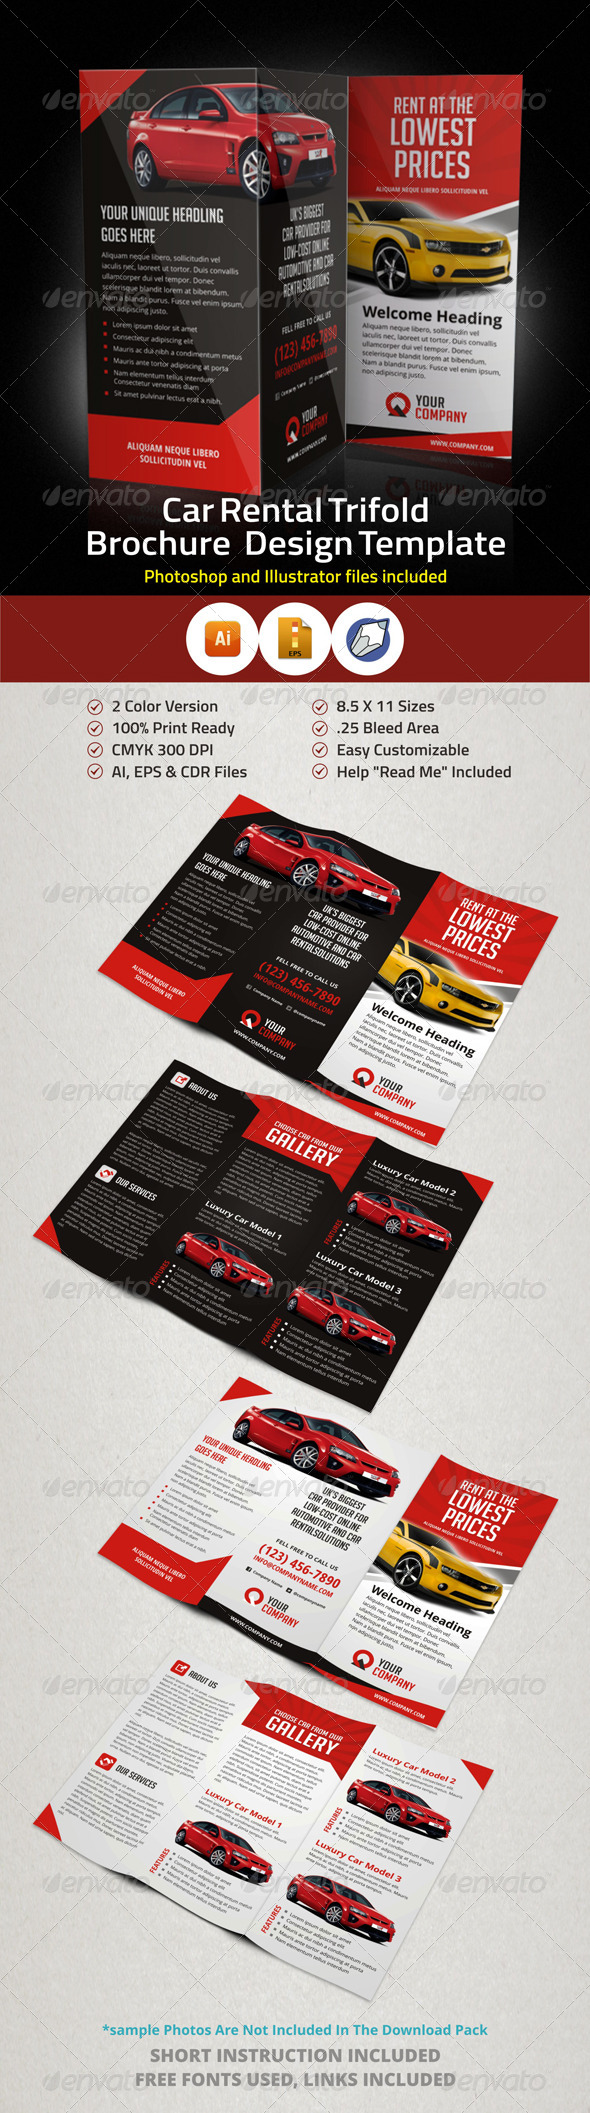 GraphicRiver Creative Car Rental Trifold Brochure Template 5907980